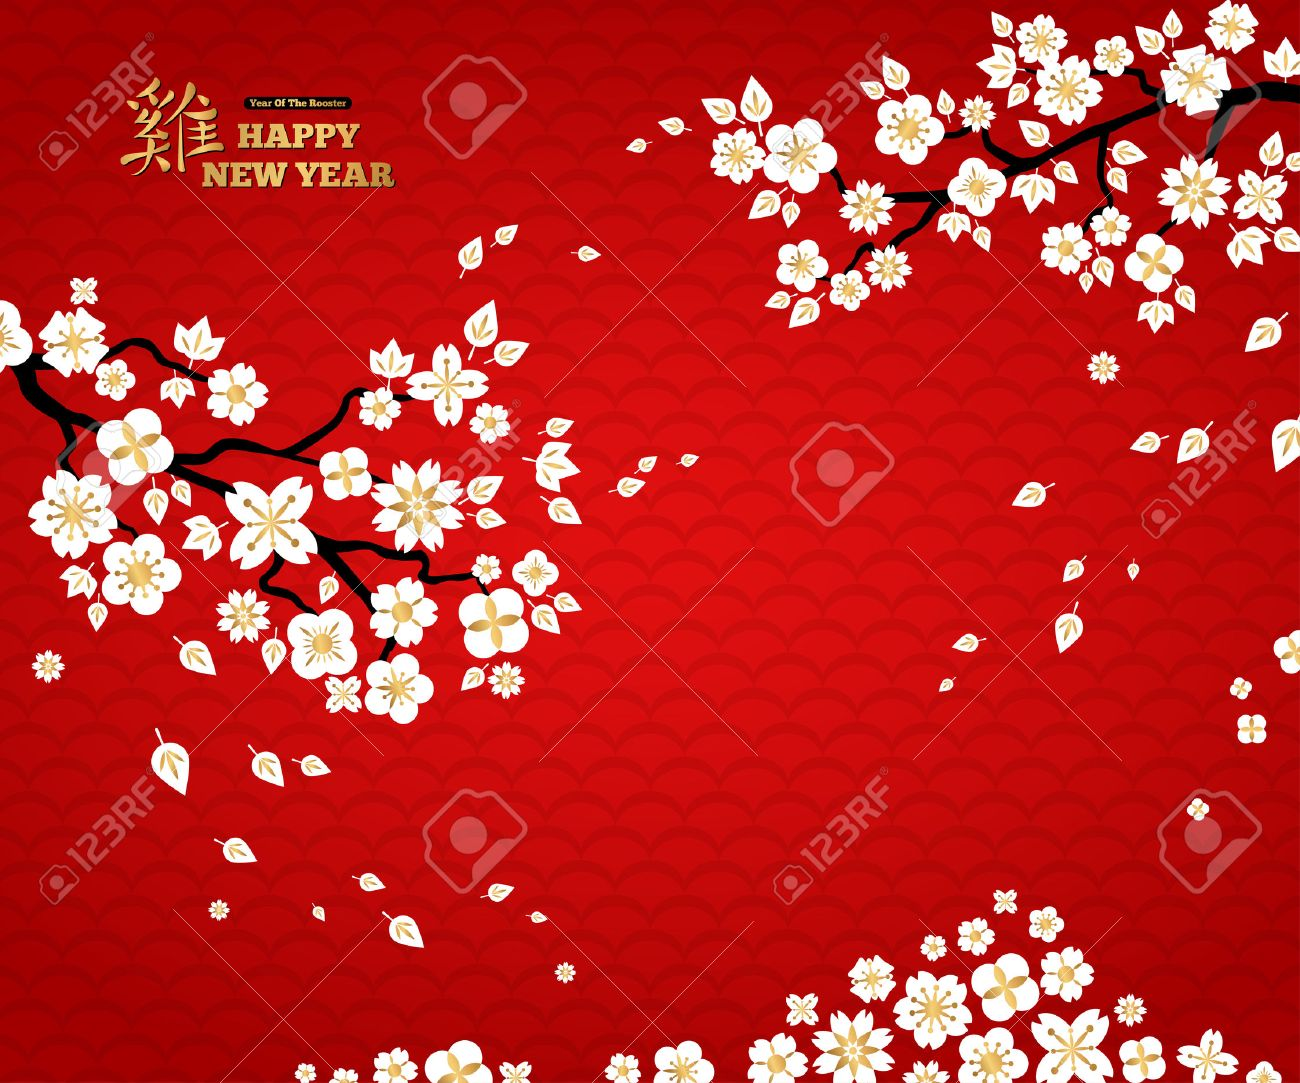 2017 chinese new year greeting card stock vector 64092024 - Chinese New Year Greetings